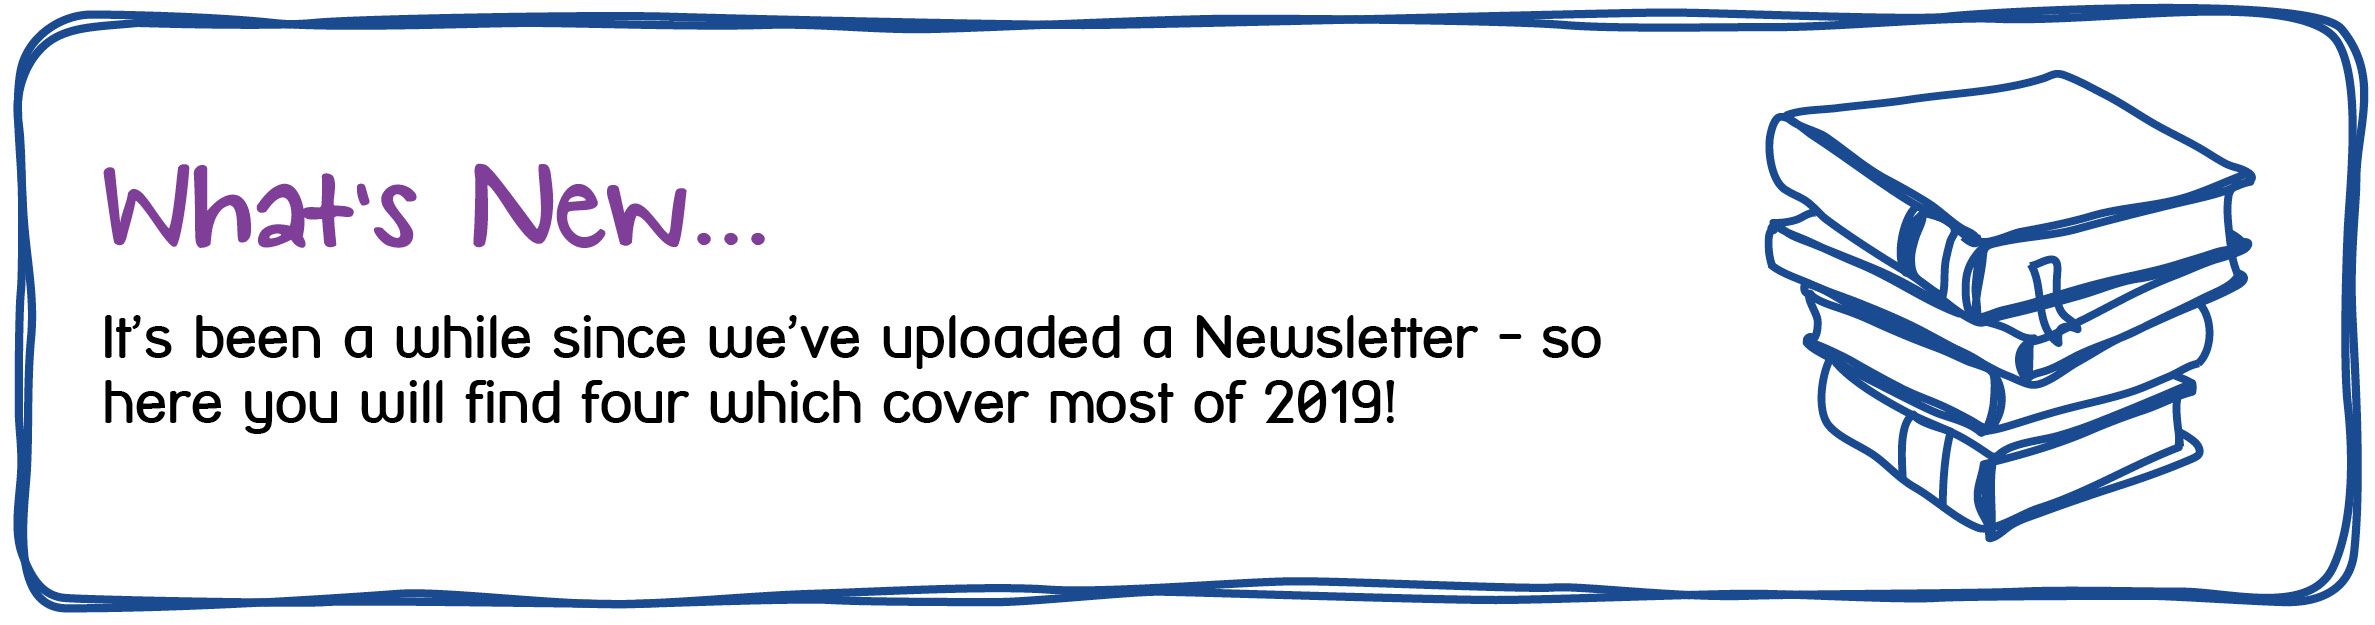 What's New...It's been a while since we've uploaded a Newsletter - so here you will find four which cover most of 2019!